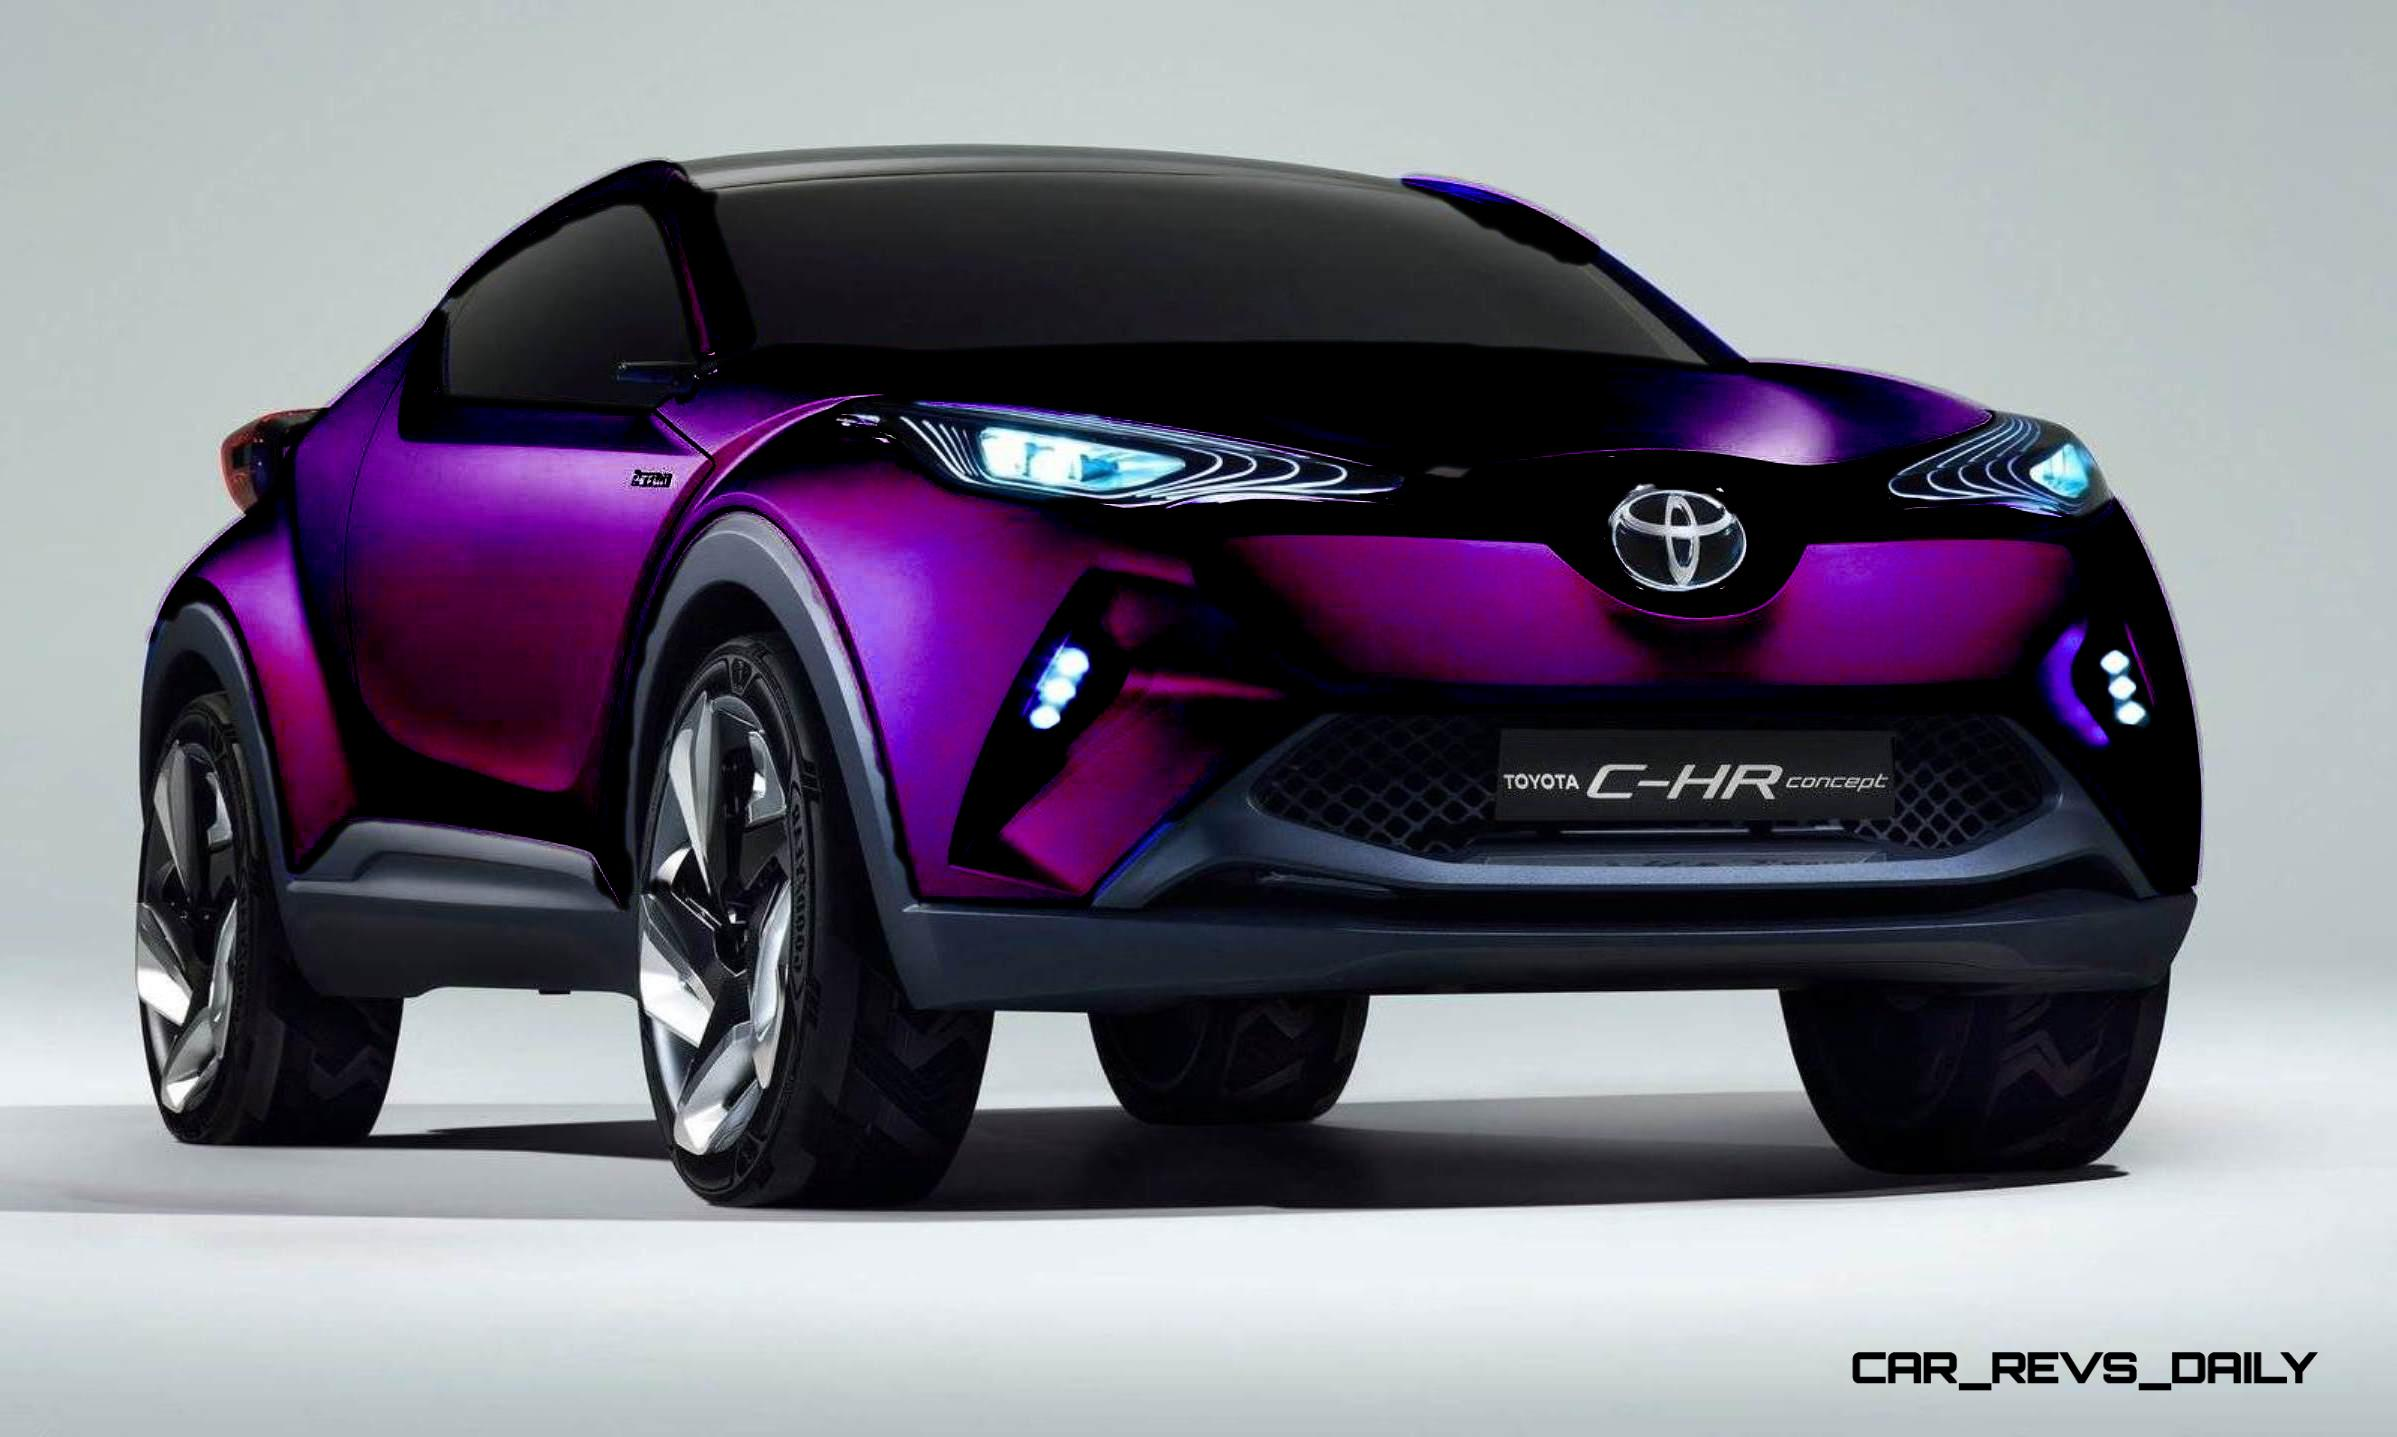 2014 toyota c hr concept for paris previews yaris crossover 1 copy53. Black Bedroom Furniture Sets. Home Design Ideas